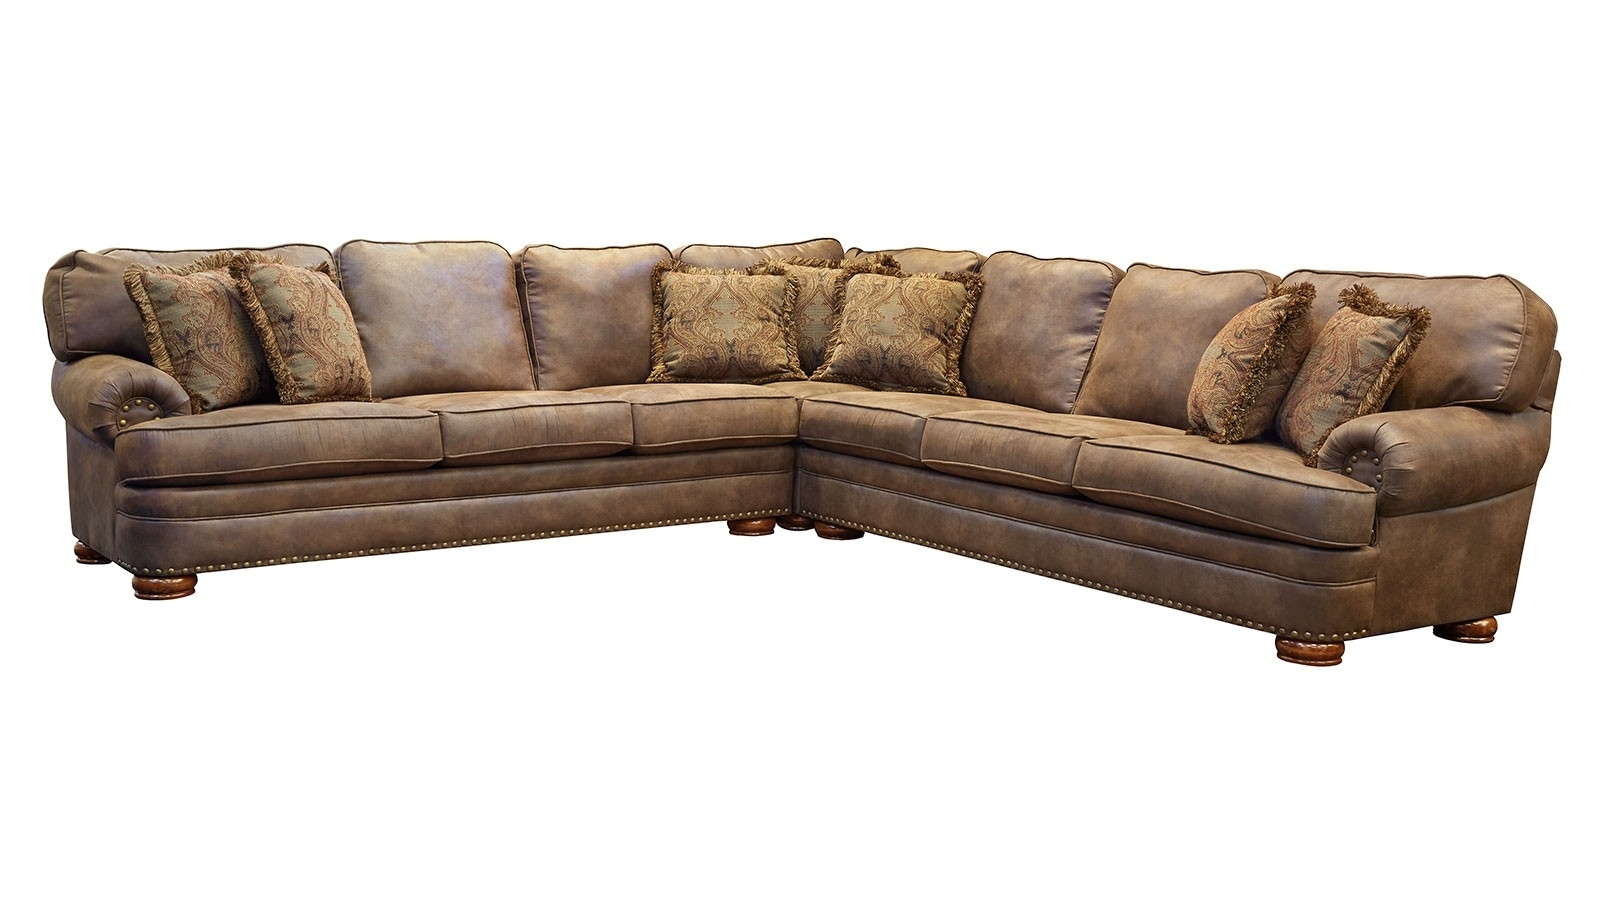 El Paso Sectional | Gallery Furniture Throughout El Paso Tx Sectional Sofas (View 2 of 10)